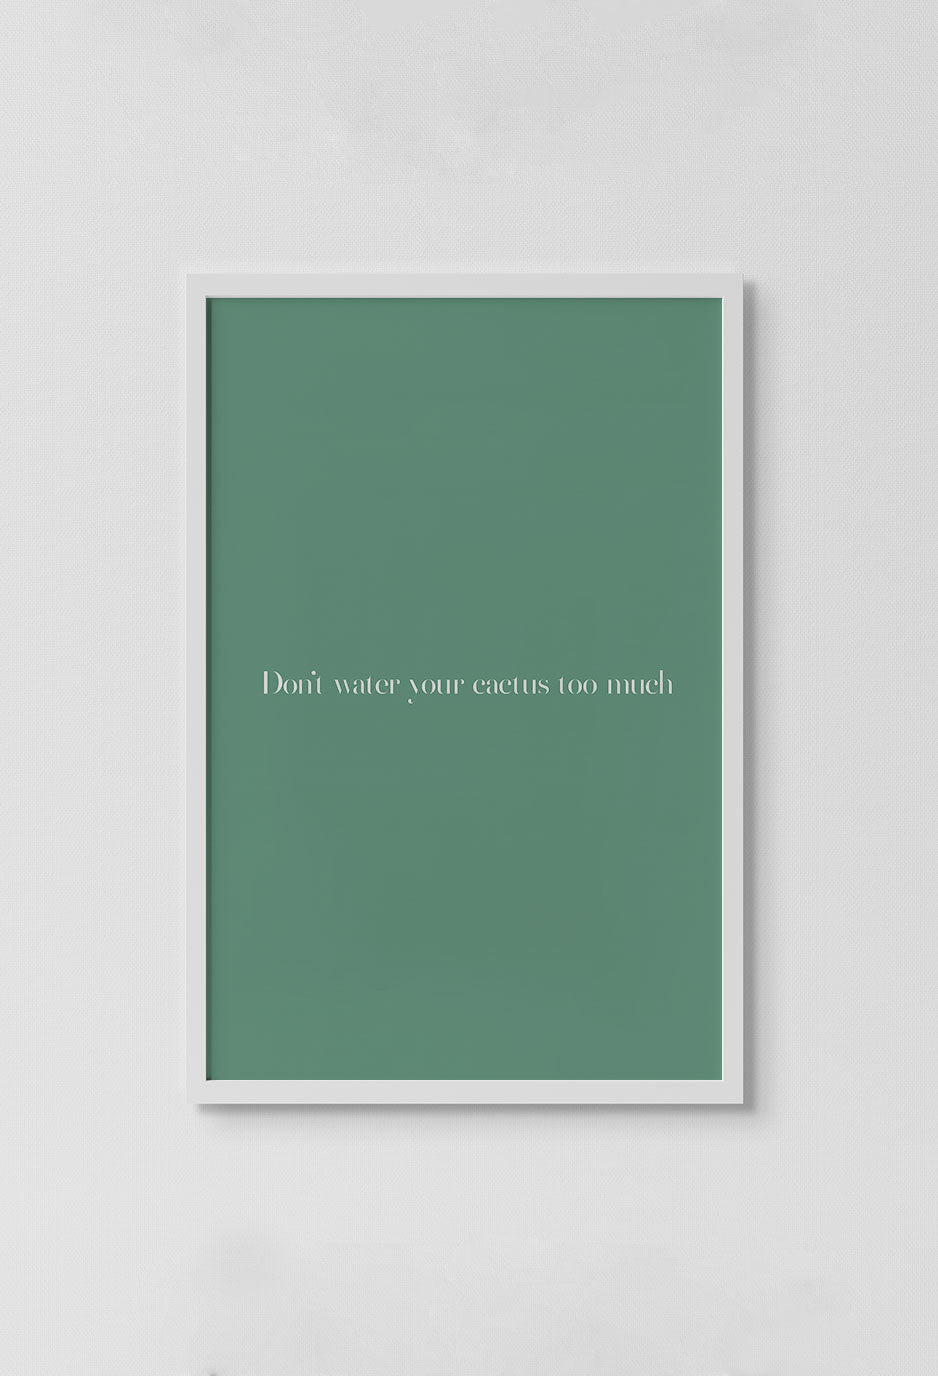 image of graphic if white letters that read dont water your cactus too much on dark green background in white frame on white wall.